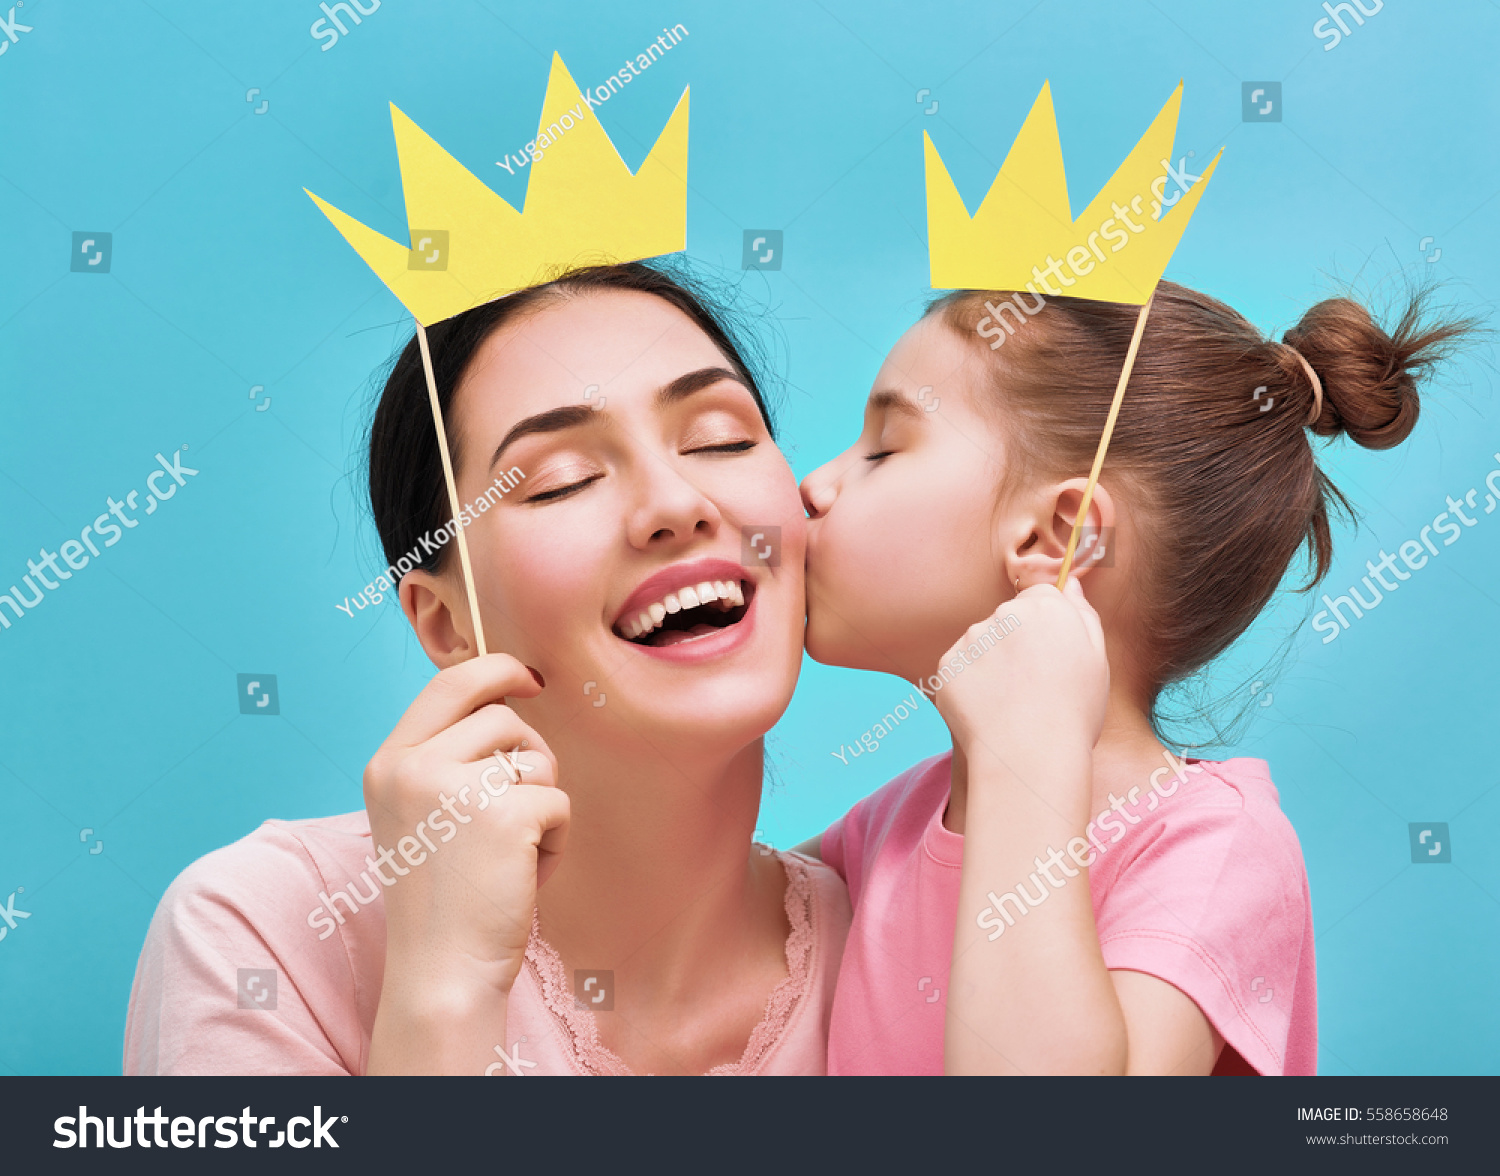 Funny family on a background of bright blue wall. Mother and her daughter girl with a paper accessories. Mom and child are holding paper crown on stick. #558658648